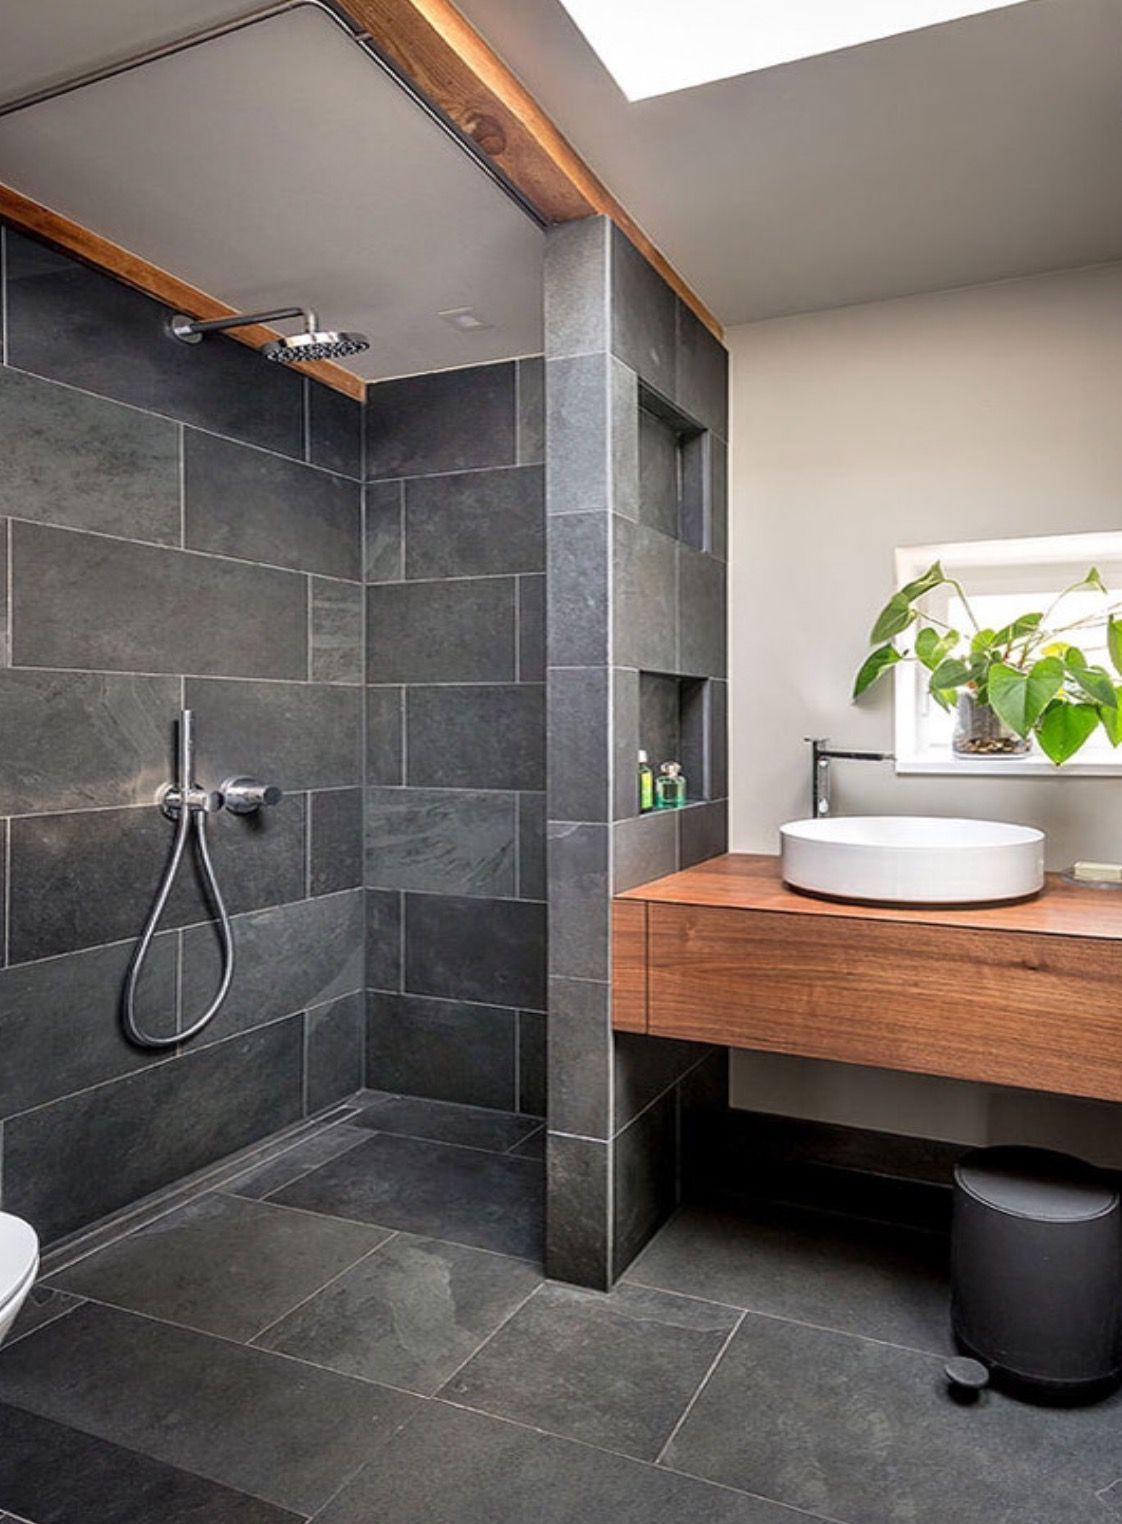 Contemporary Bathroom Remodel Every Bathroom Remodel Starts With A Layout Concept From Traditiona Bathroom Layout Bathroom Interior Design Bathroom Interior